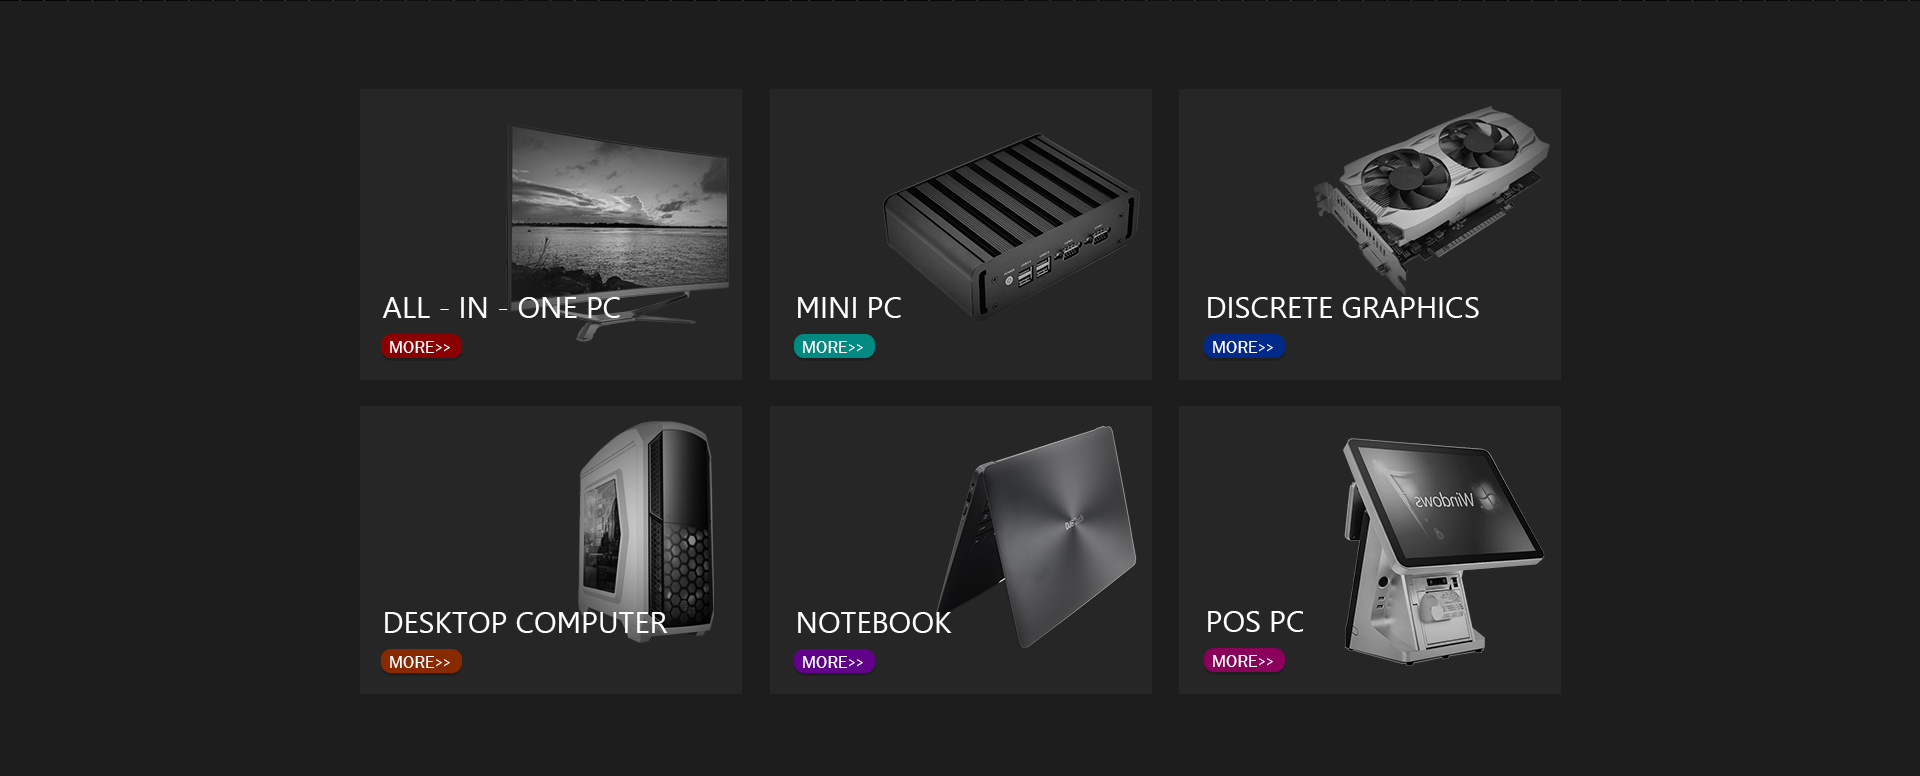 SZ DJS Electronic Co., Ltd. - All In One PC, Mini PC